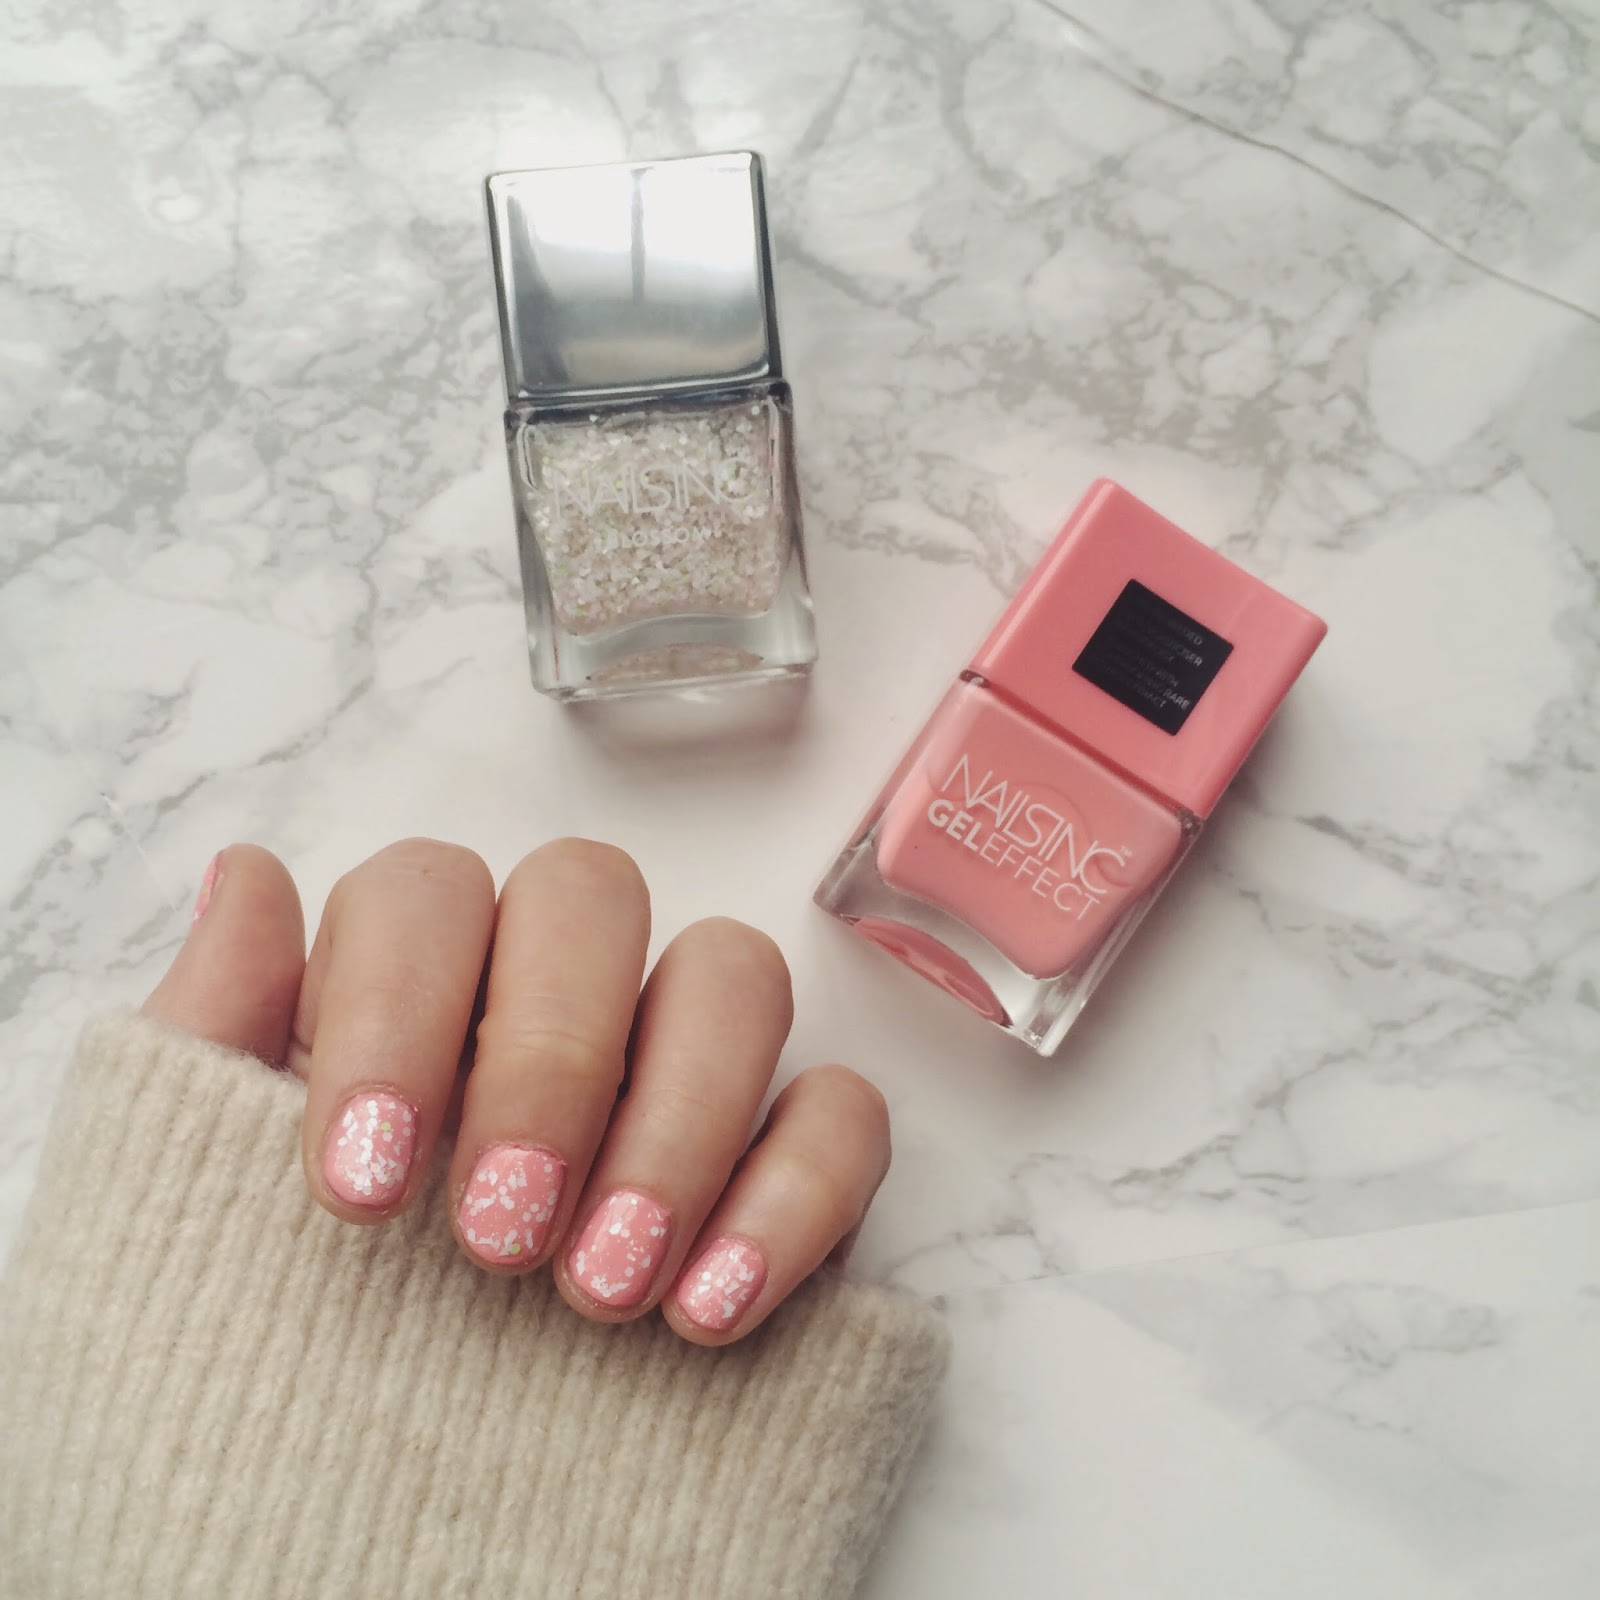 nails inc nail polish review, nails inc blossom collection, nail polish swap, nail polish review, pink nail polish, beauty blogger, fashion blogger